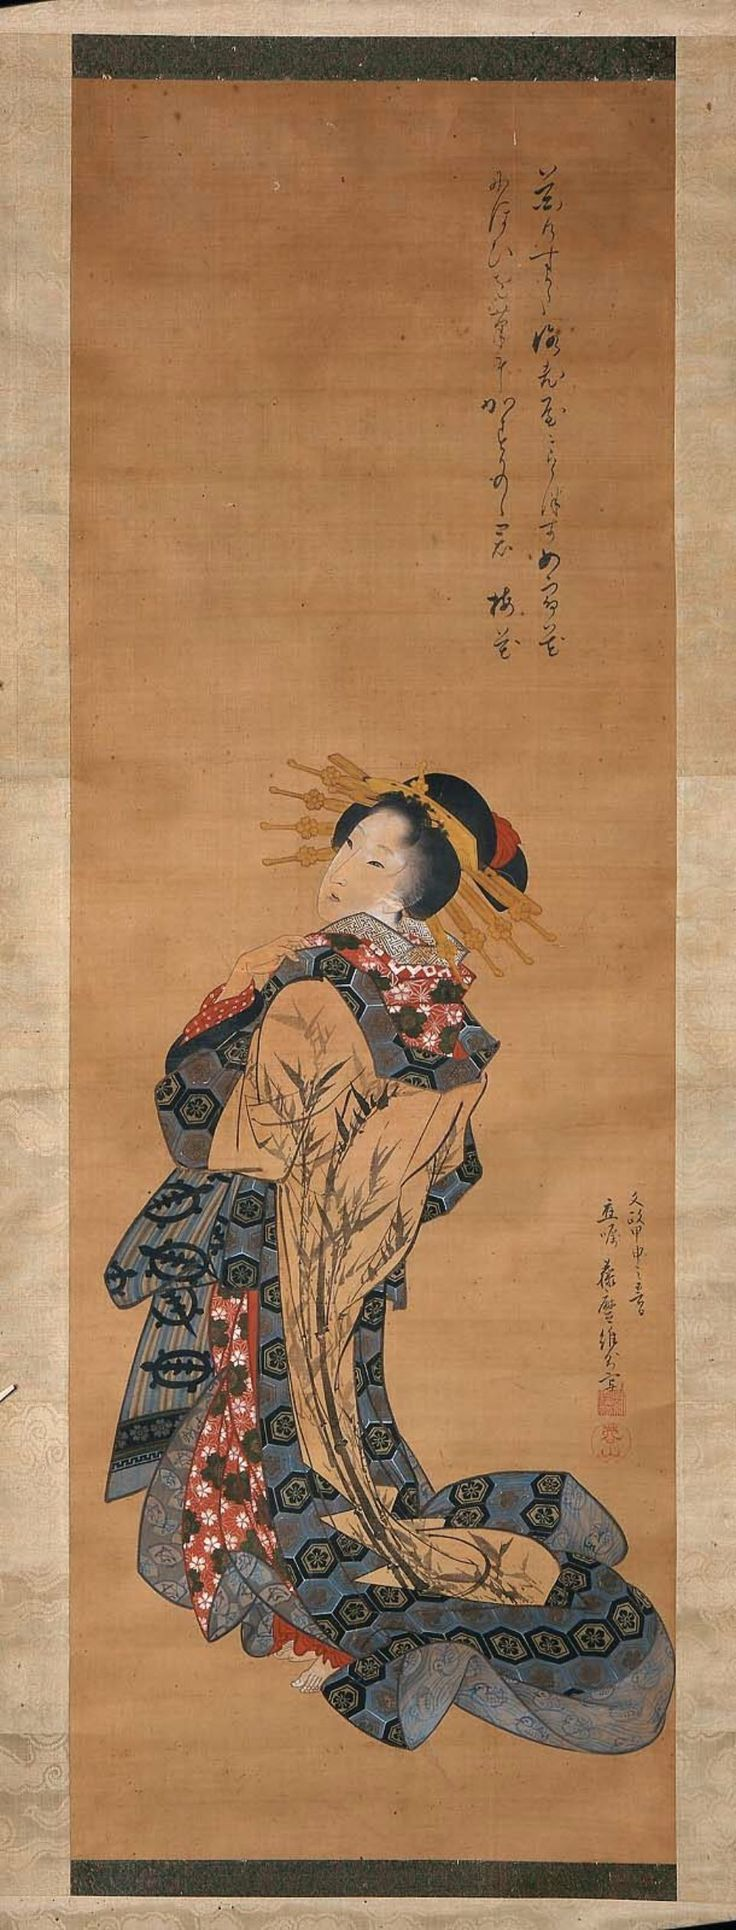 Arts and crafts prints - Find This Pin And More On Japanese Arts And Crafts